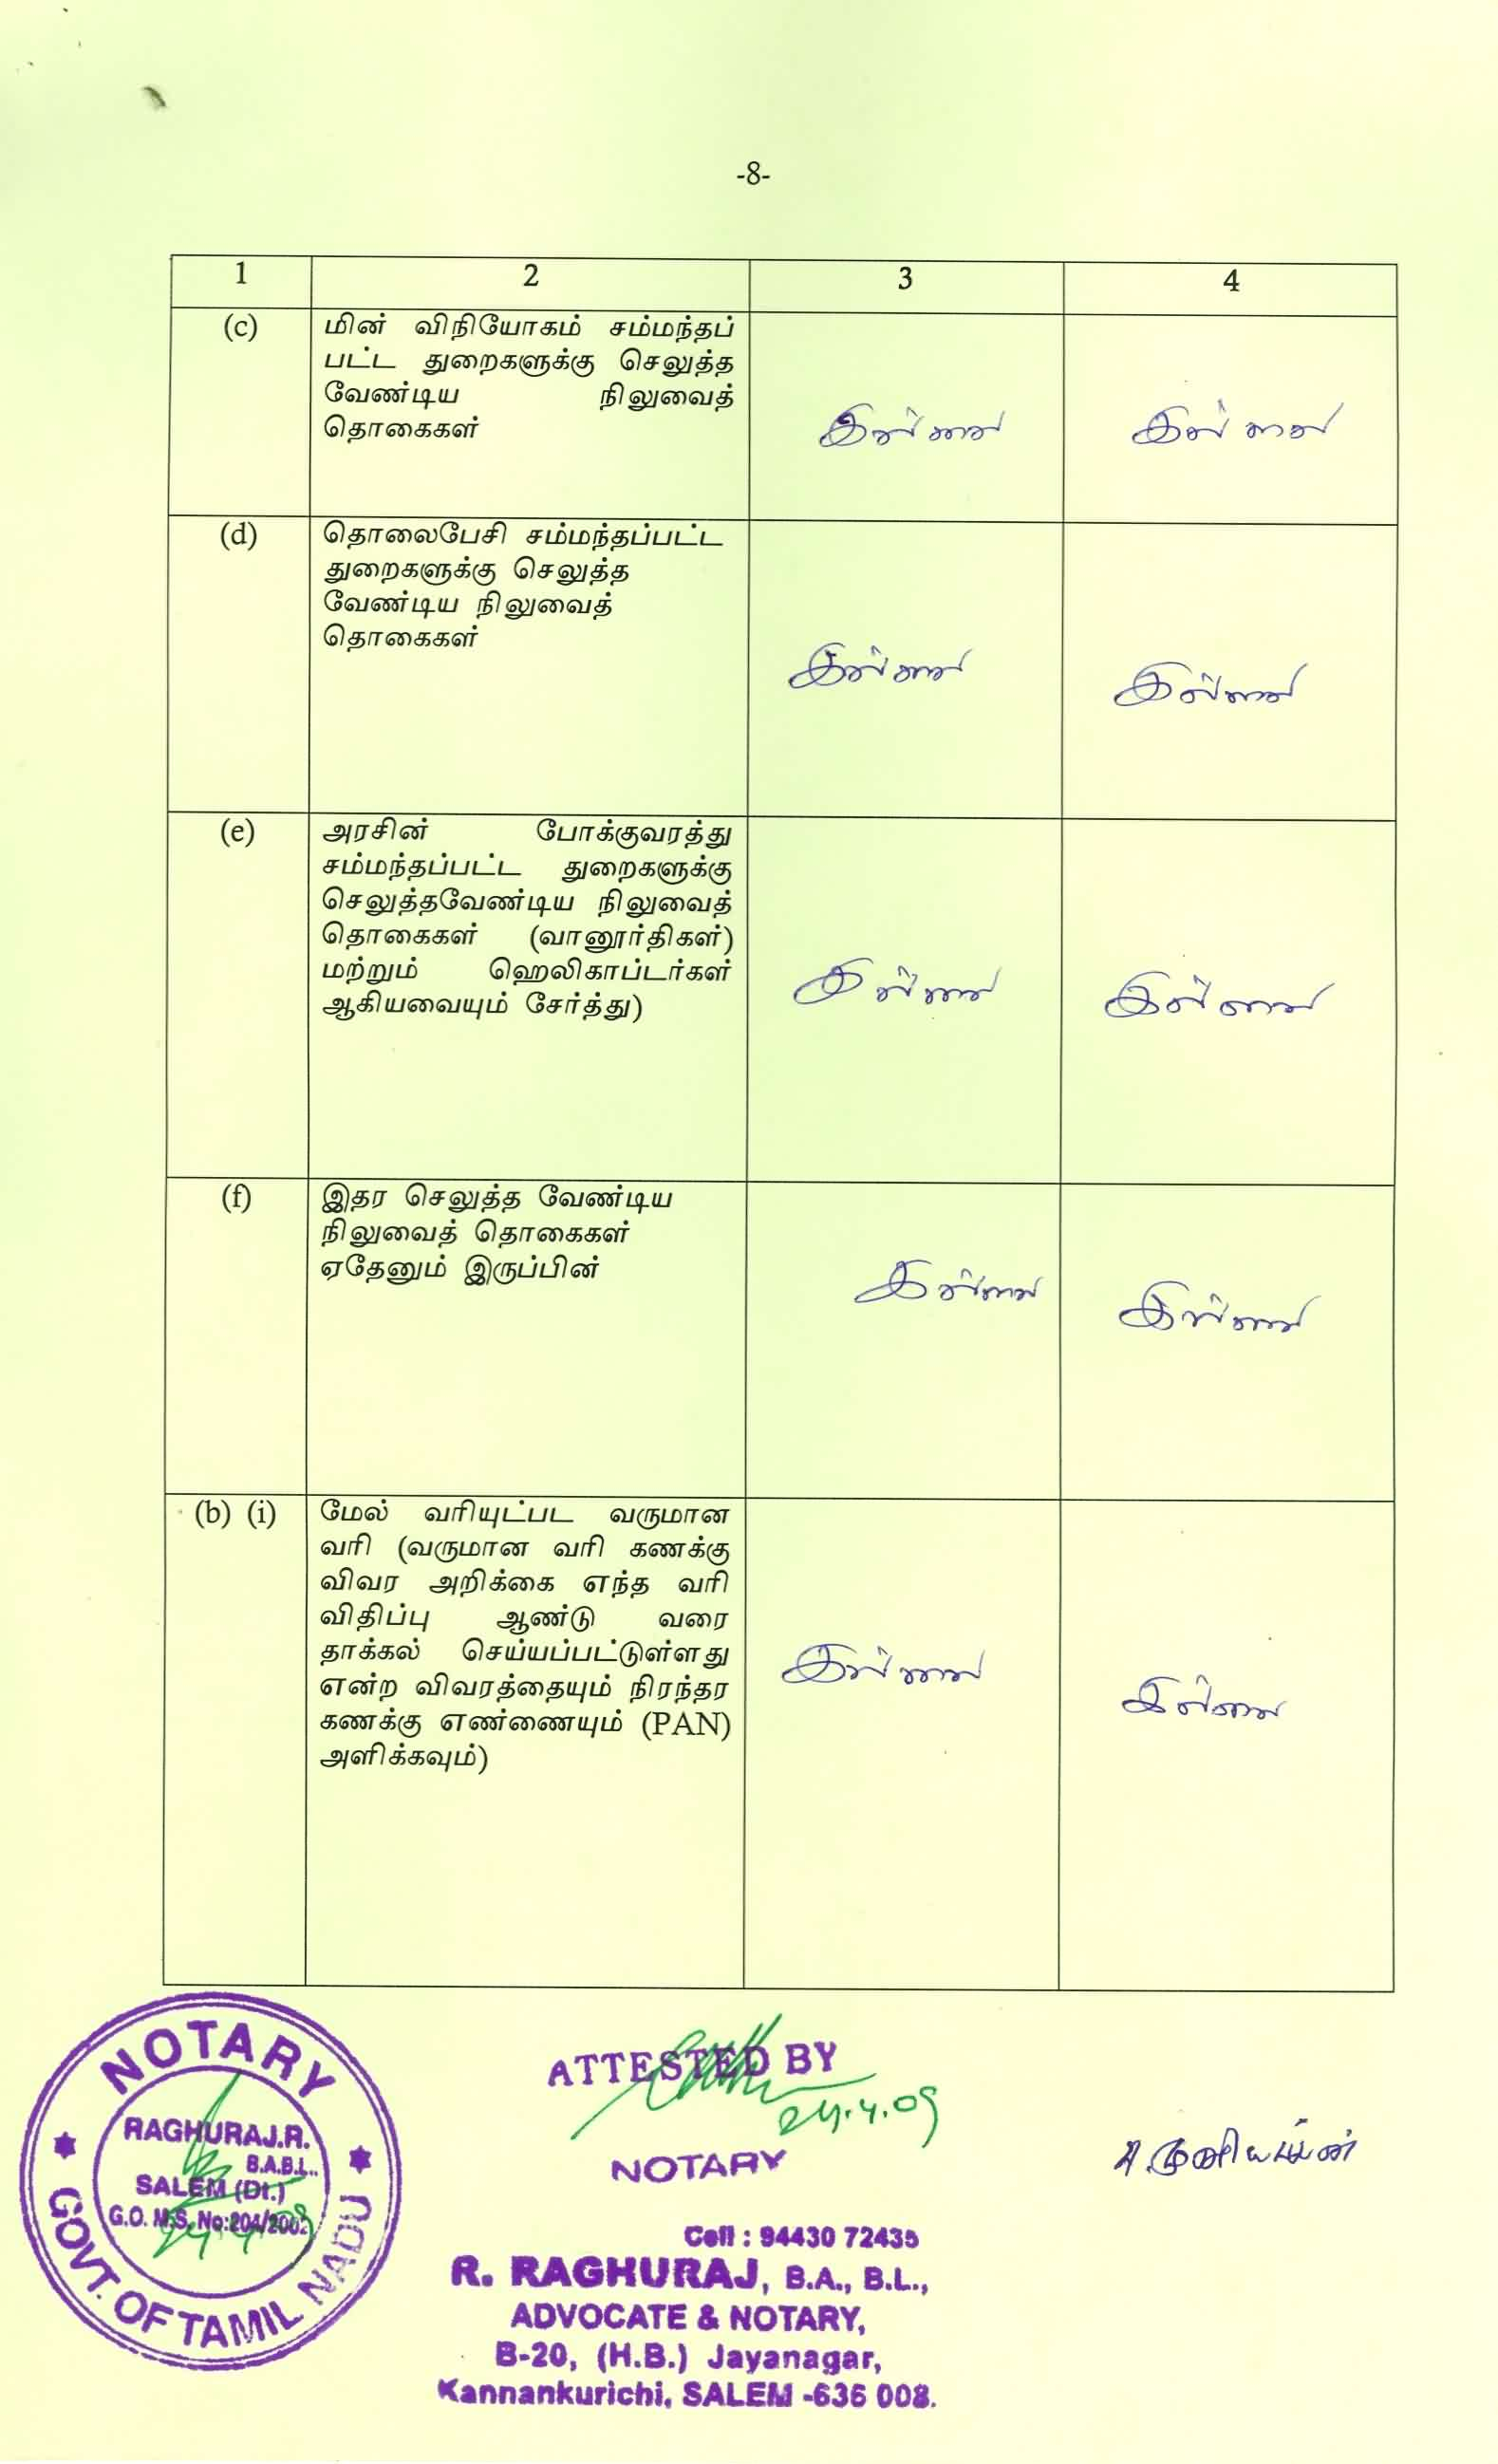 Office Of Chief Electoral Officer Tamilnadu General Election 2009